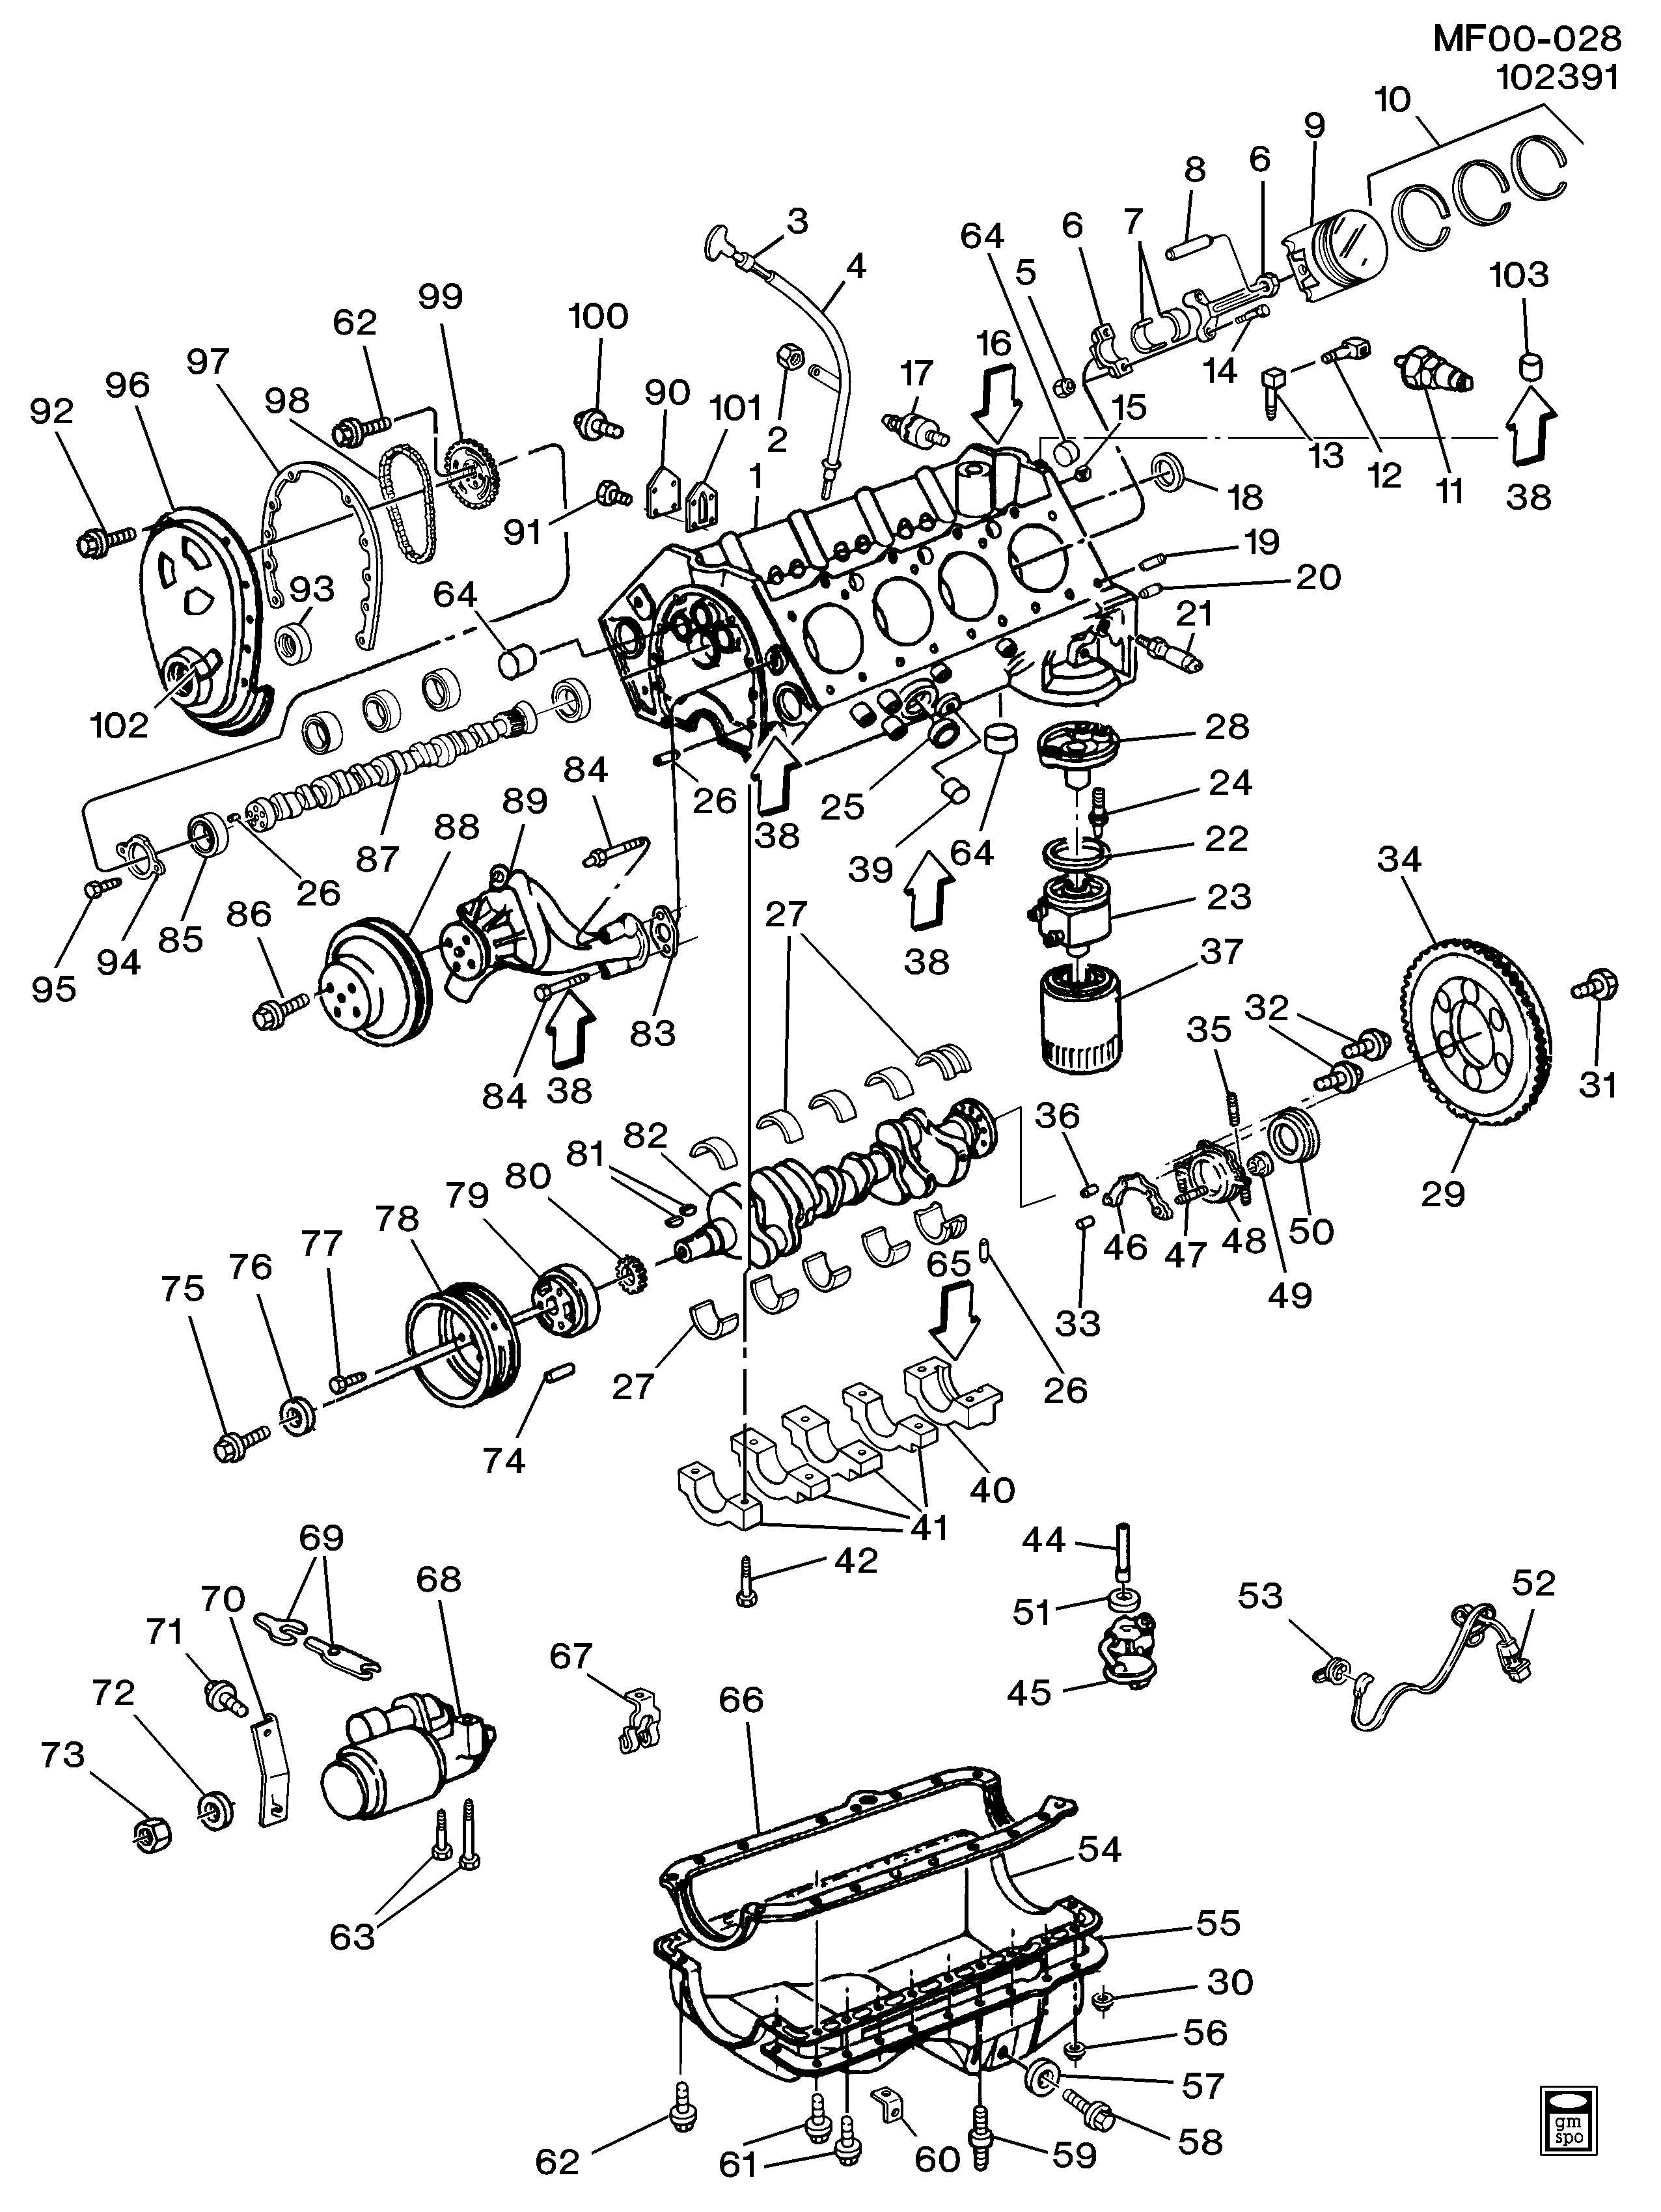 [WRG-4671] L98 Engine Diagram